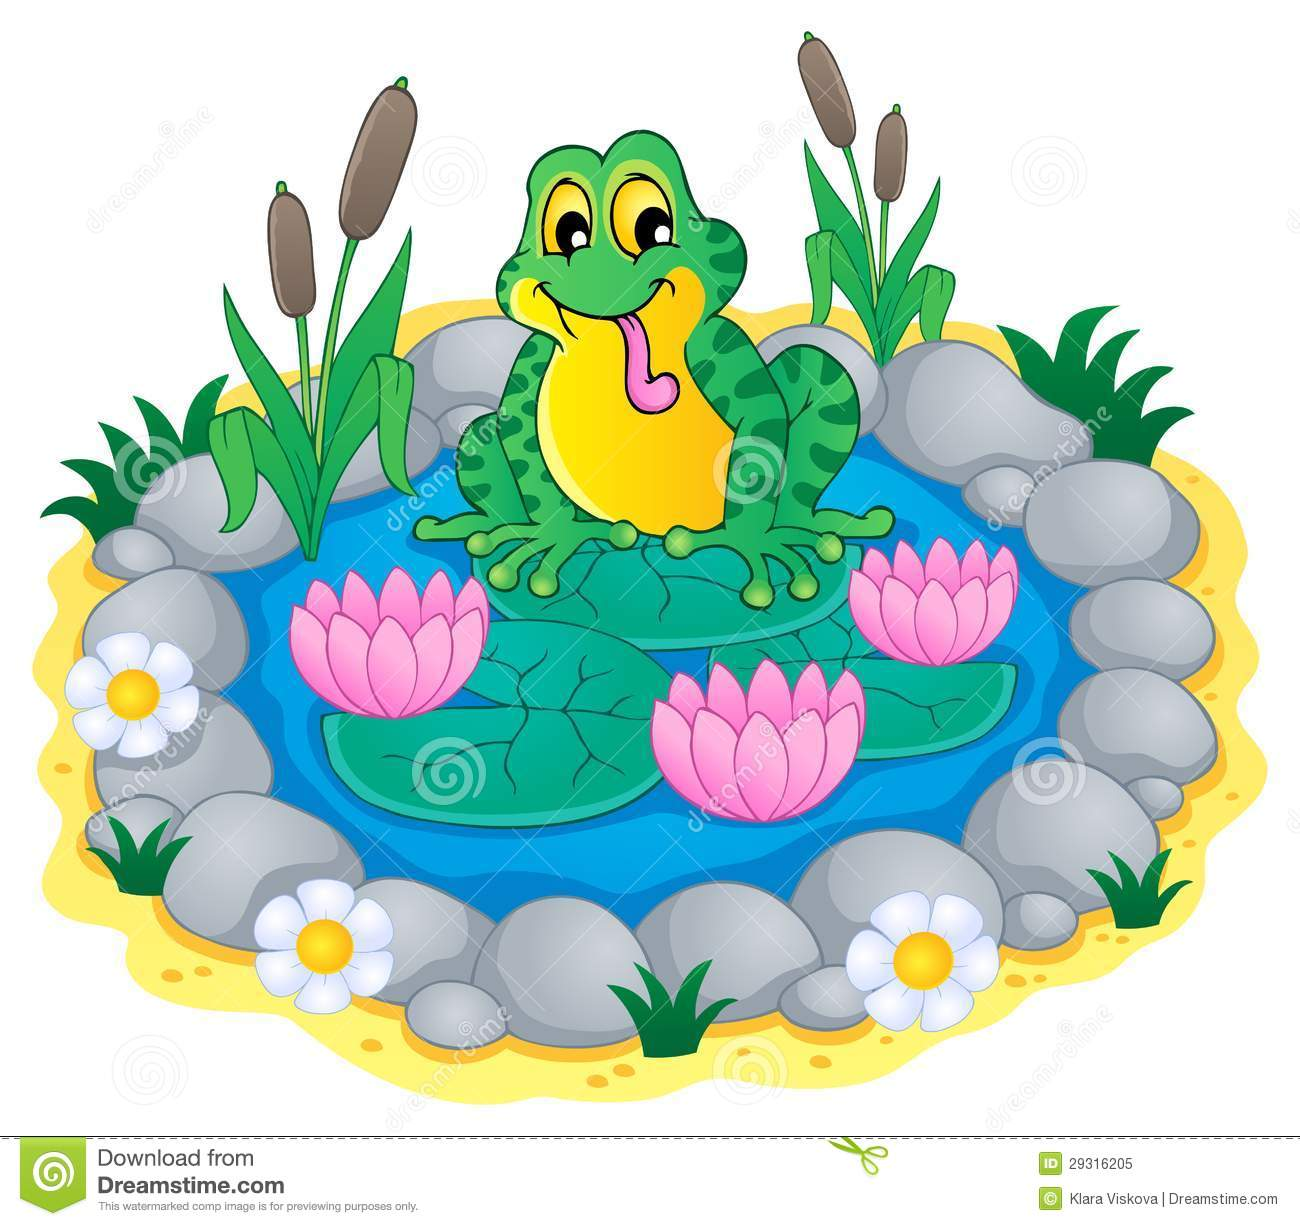 Displaying 18 Images For Pond Ecosystem Clipart